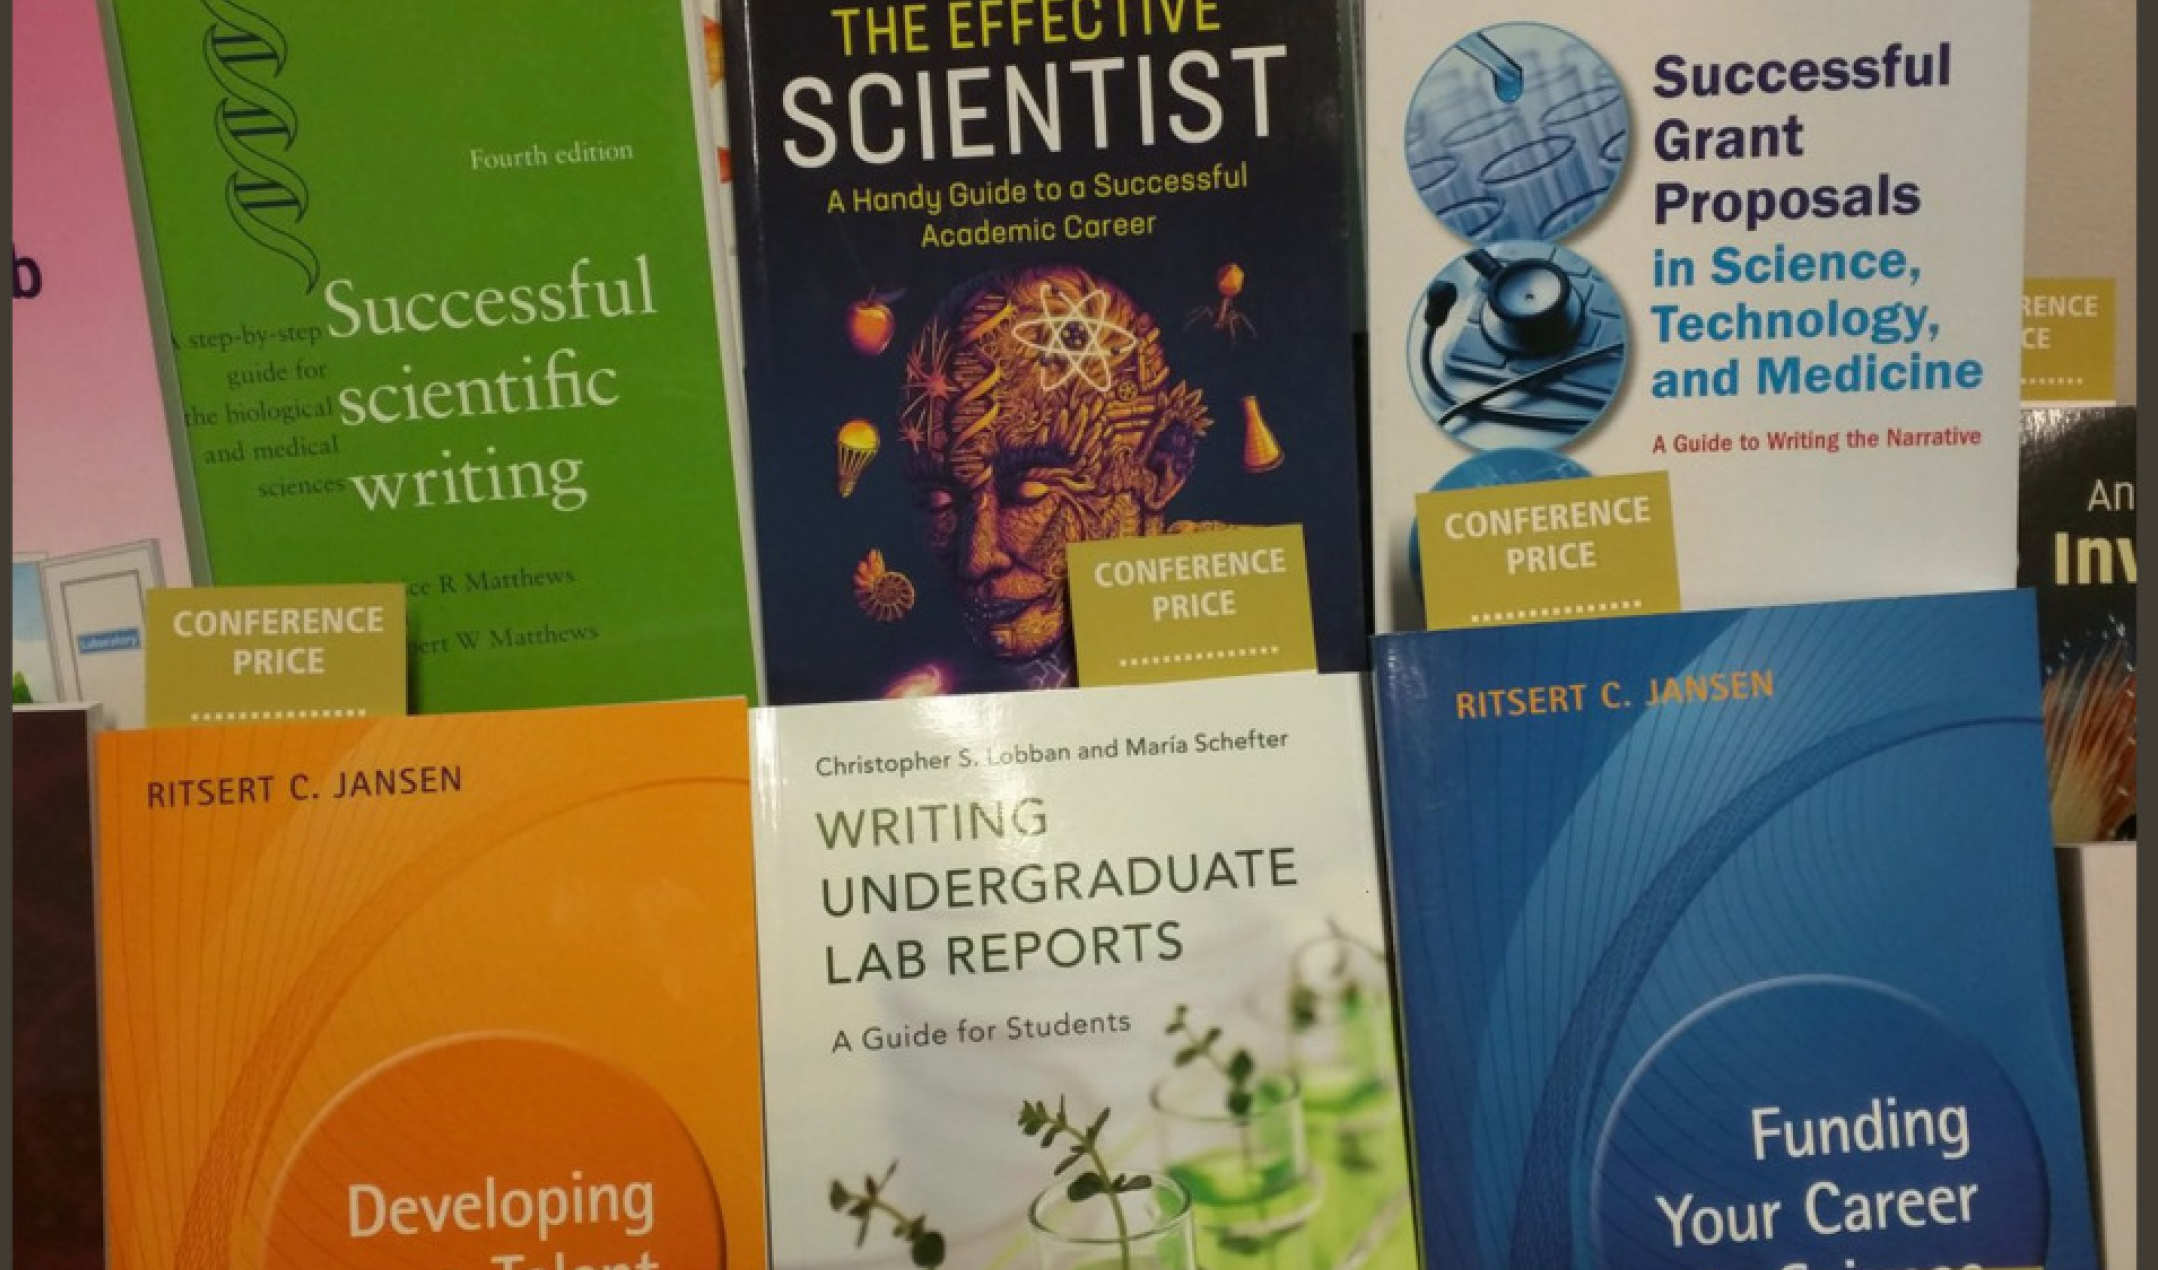 Recommended reading for ALL scientists